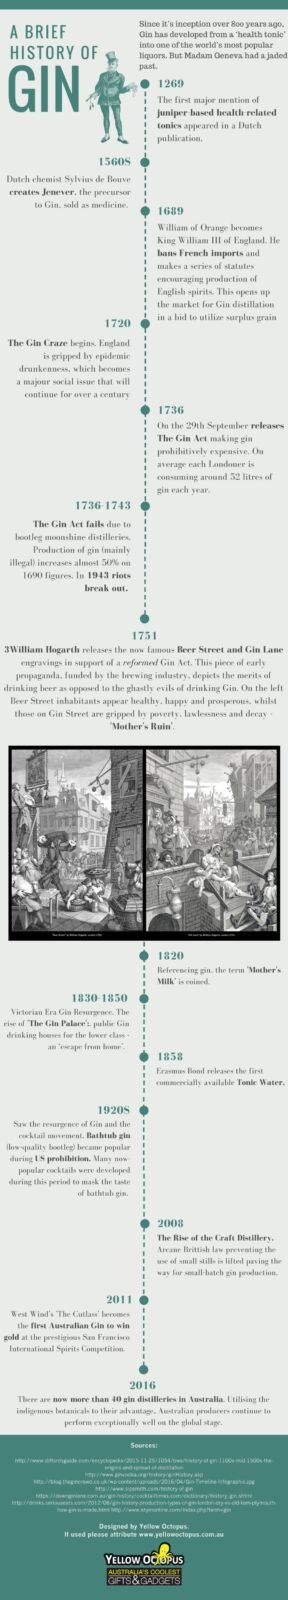 A Brief History of Gin [INFOGRAPHIC]